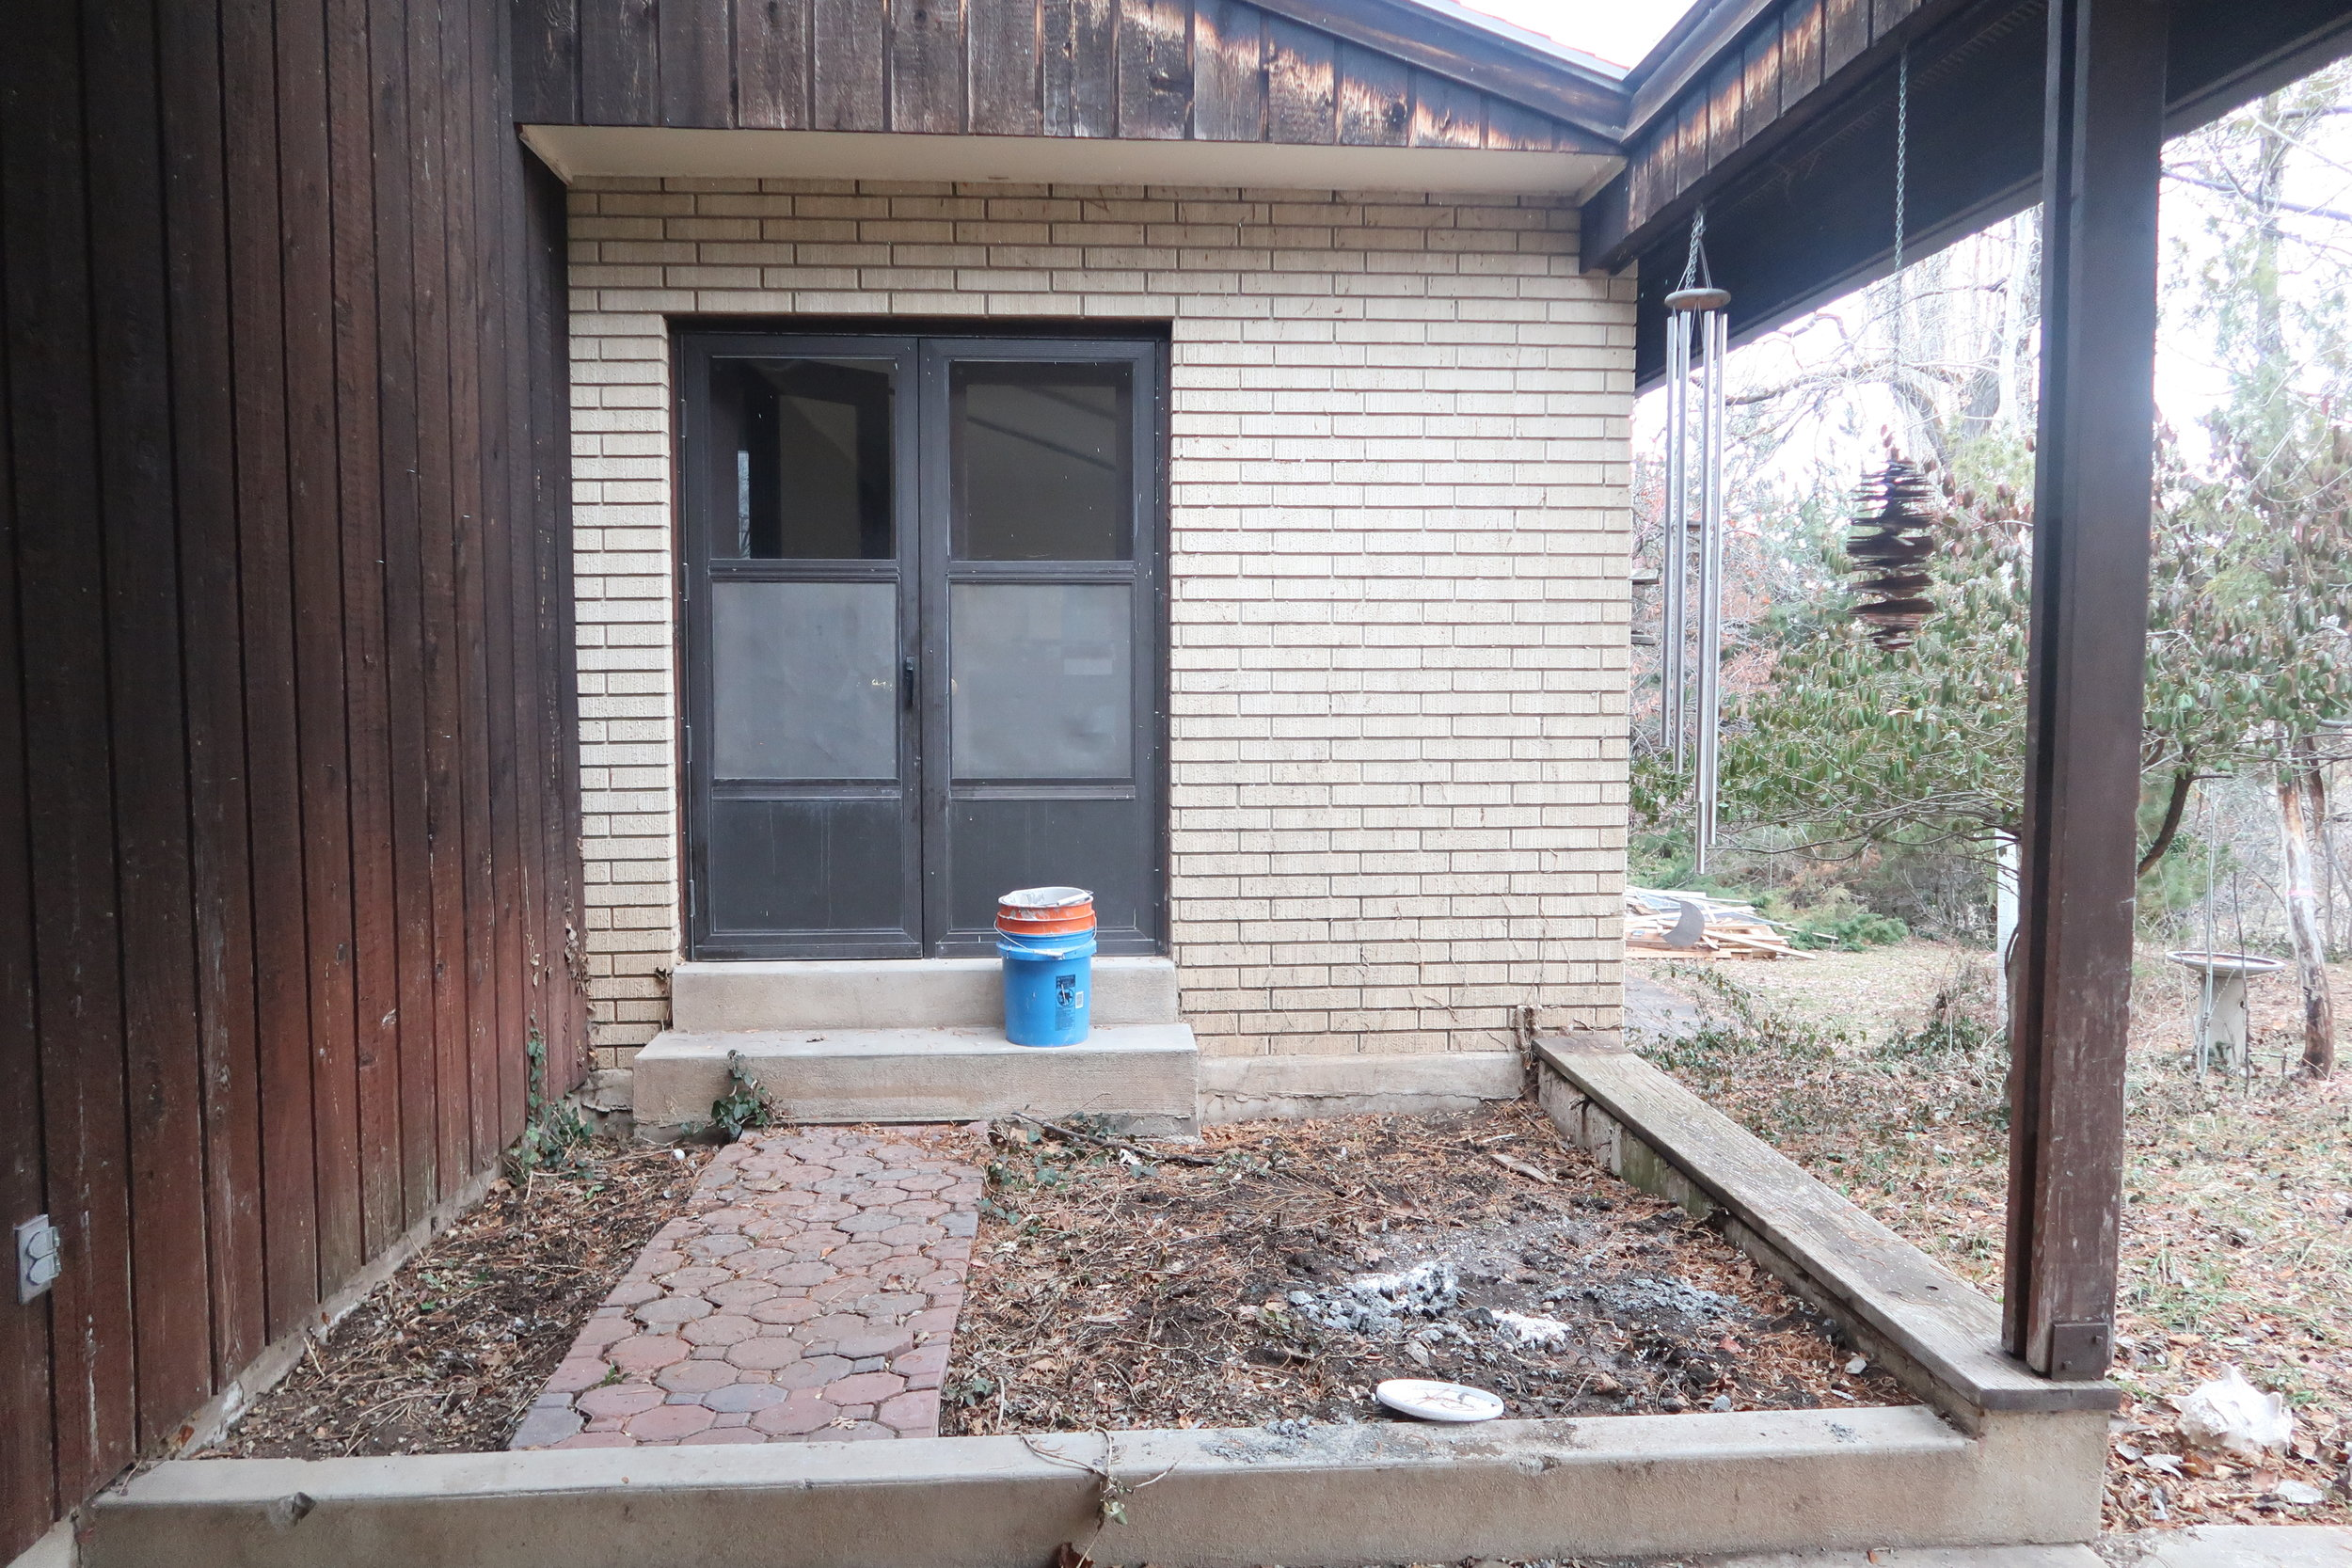 Rear covered patio now. We plan to stain the exterior wood paneling, plant new flowers and greenery and eventually replace the existing door.